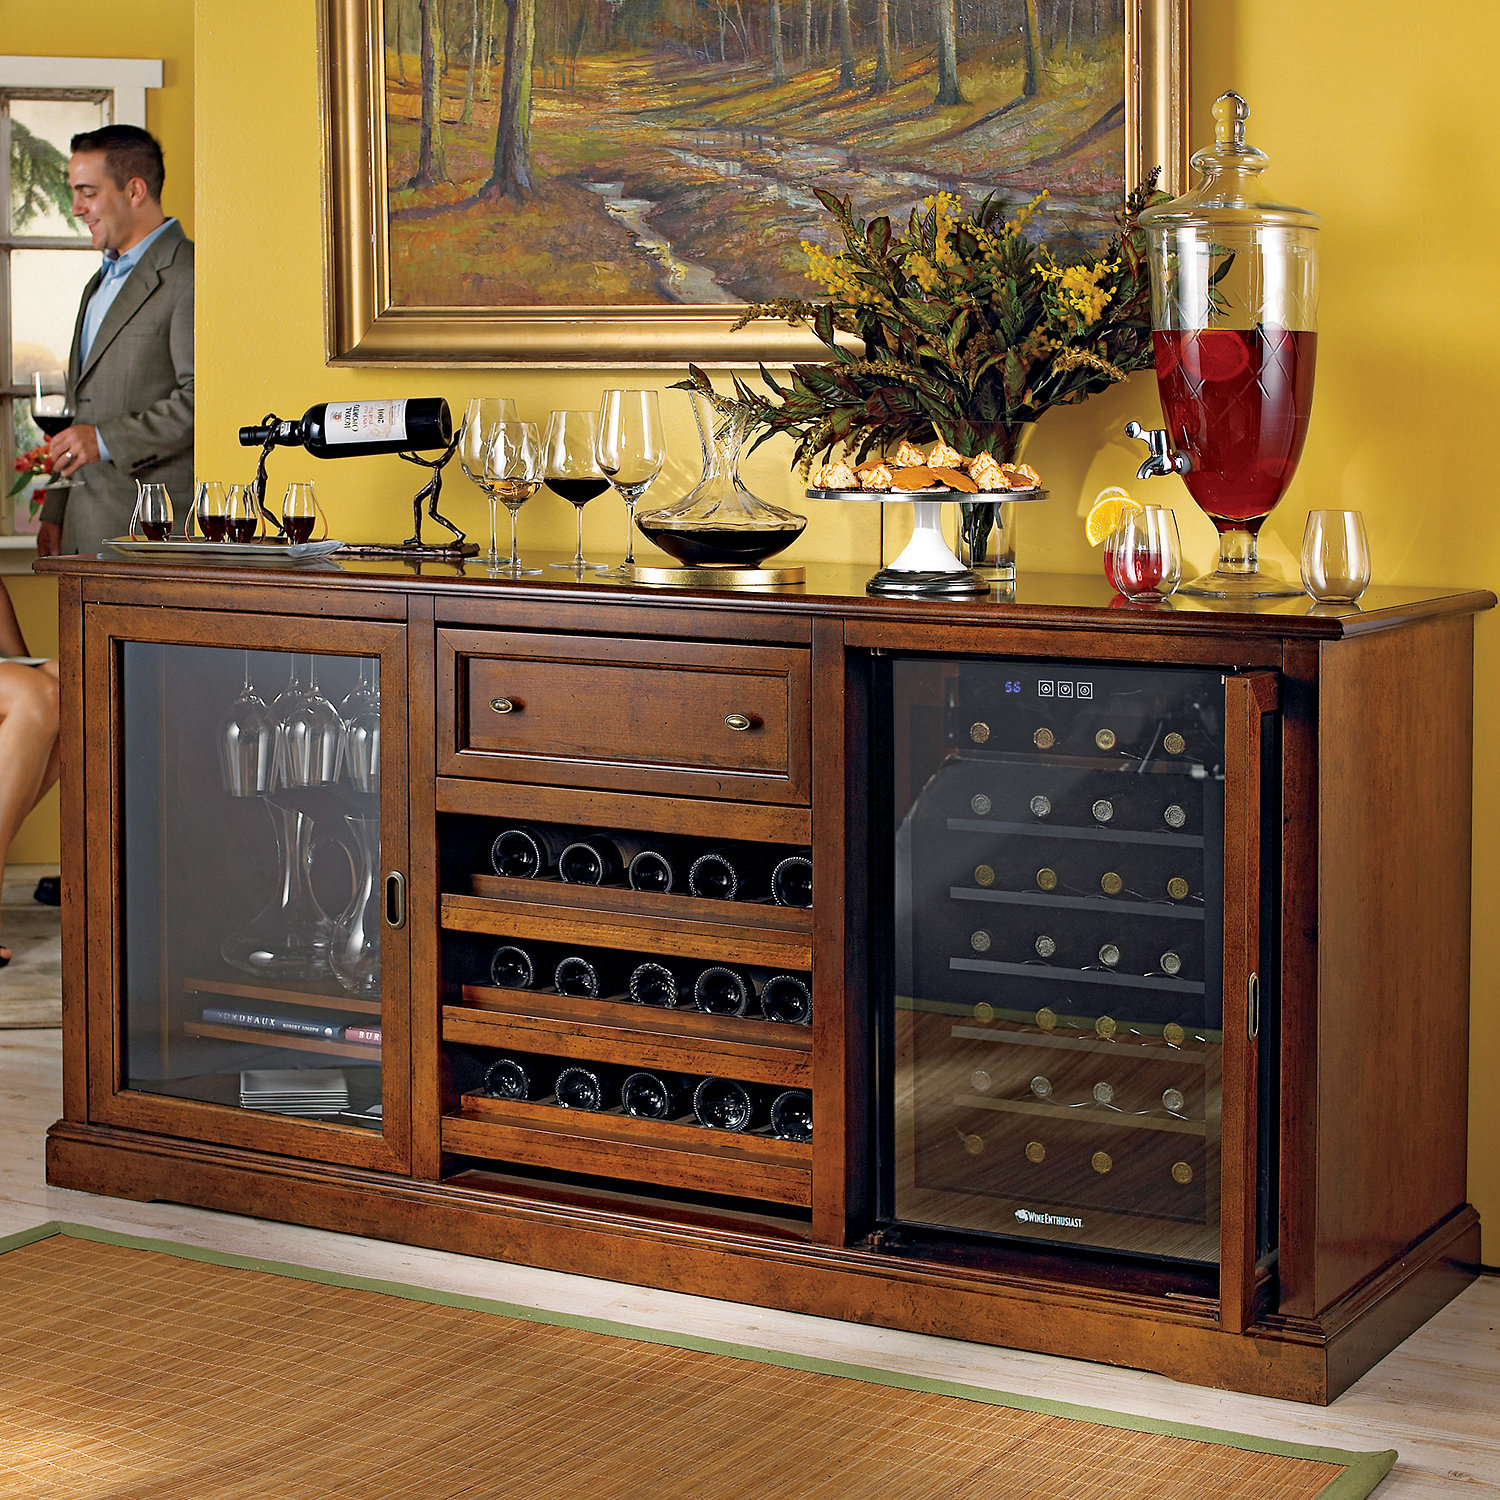 Siena Wine Credenza Walnut with Wine Refrigerator Wine Enthusiast